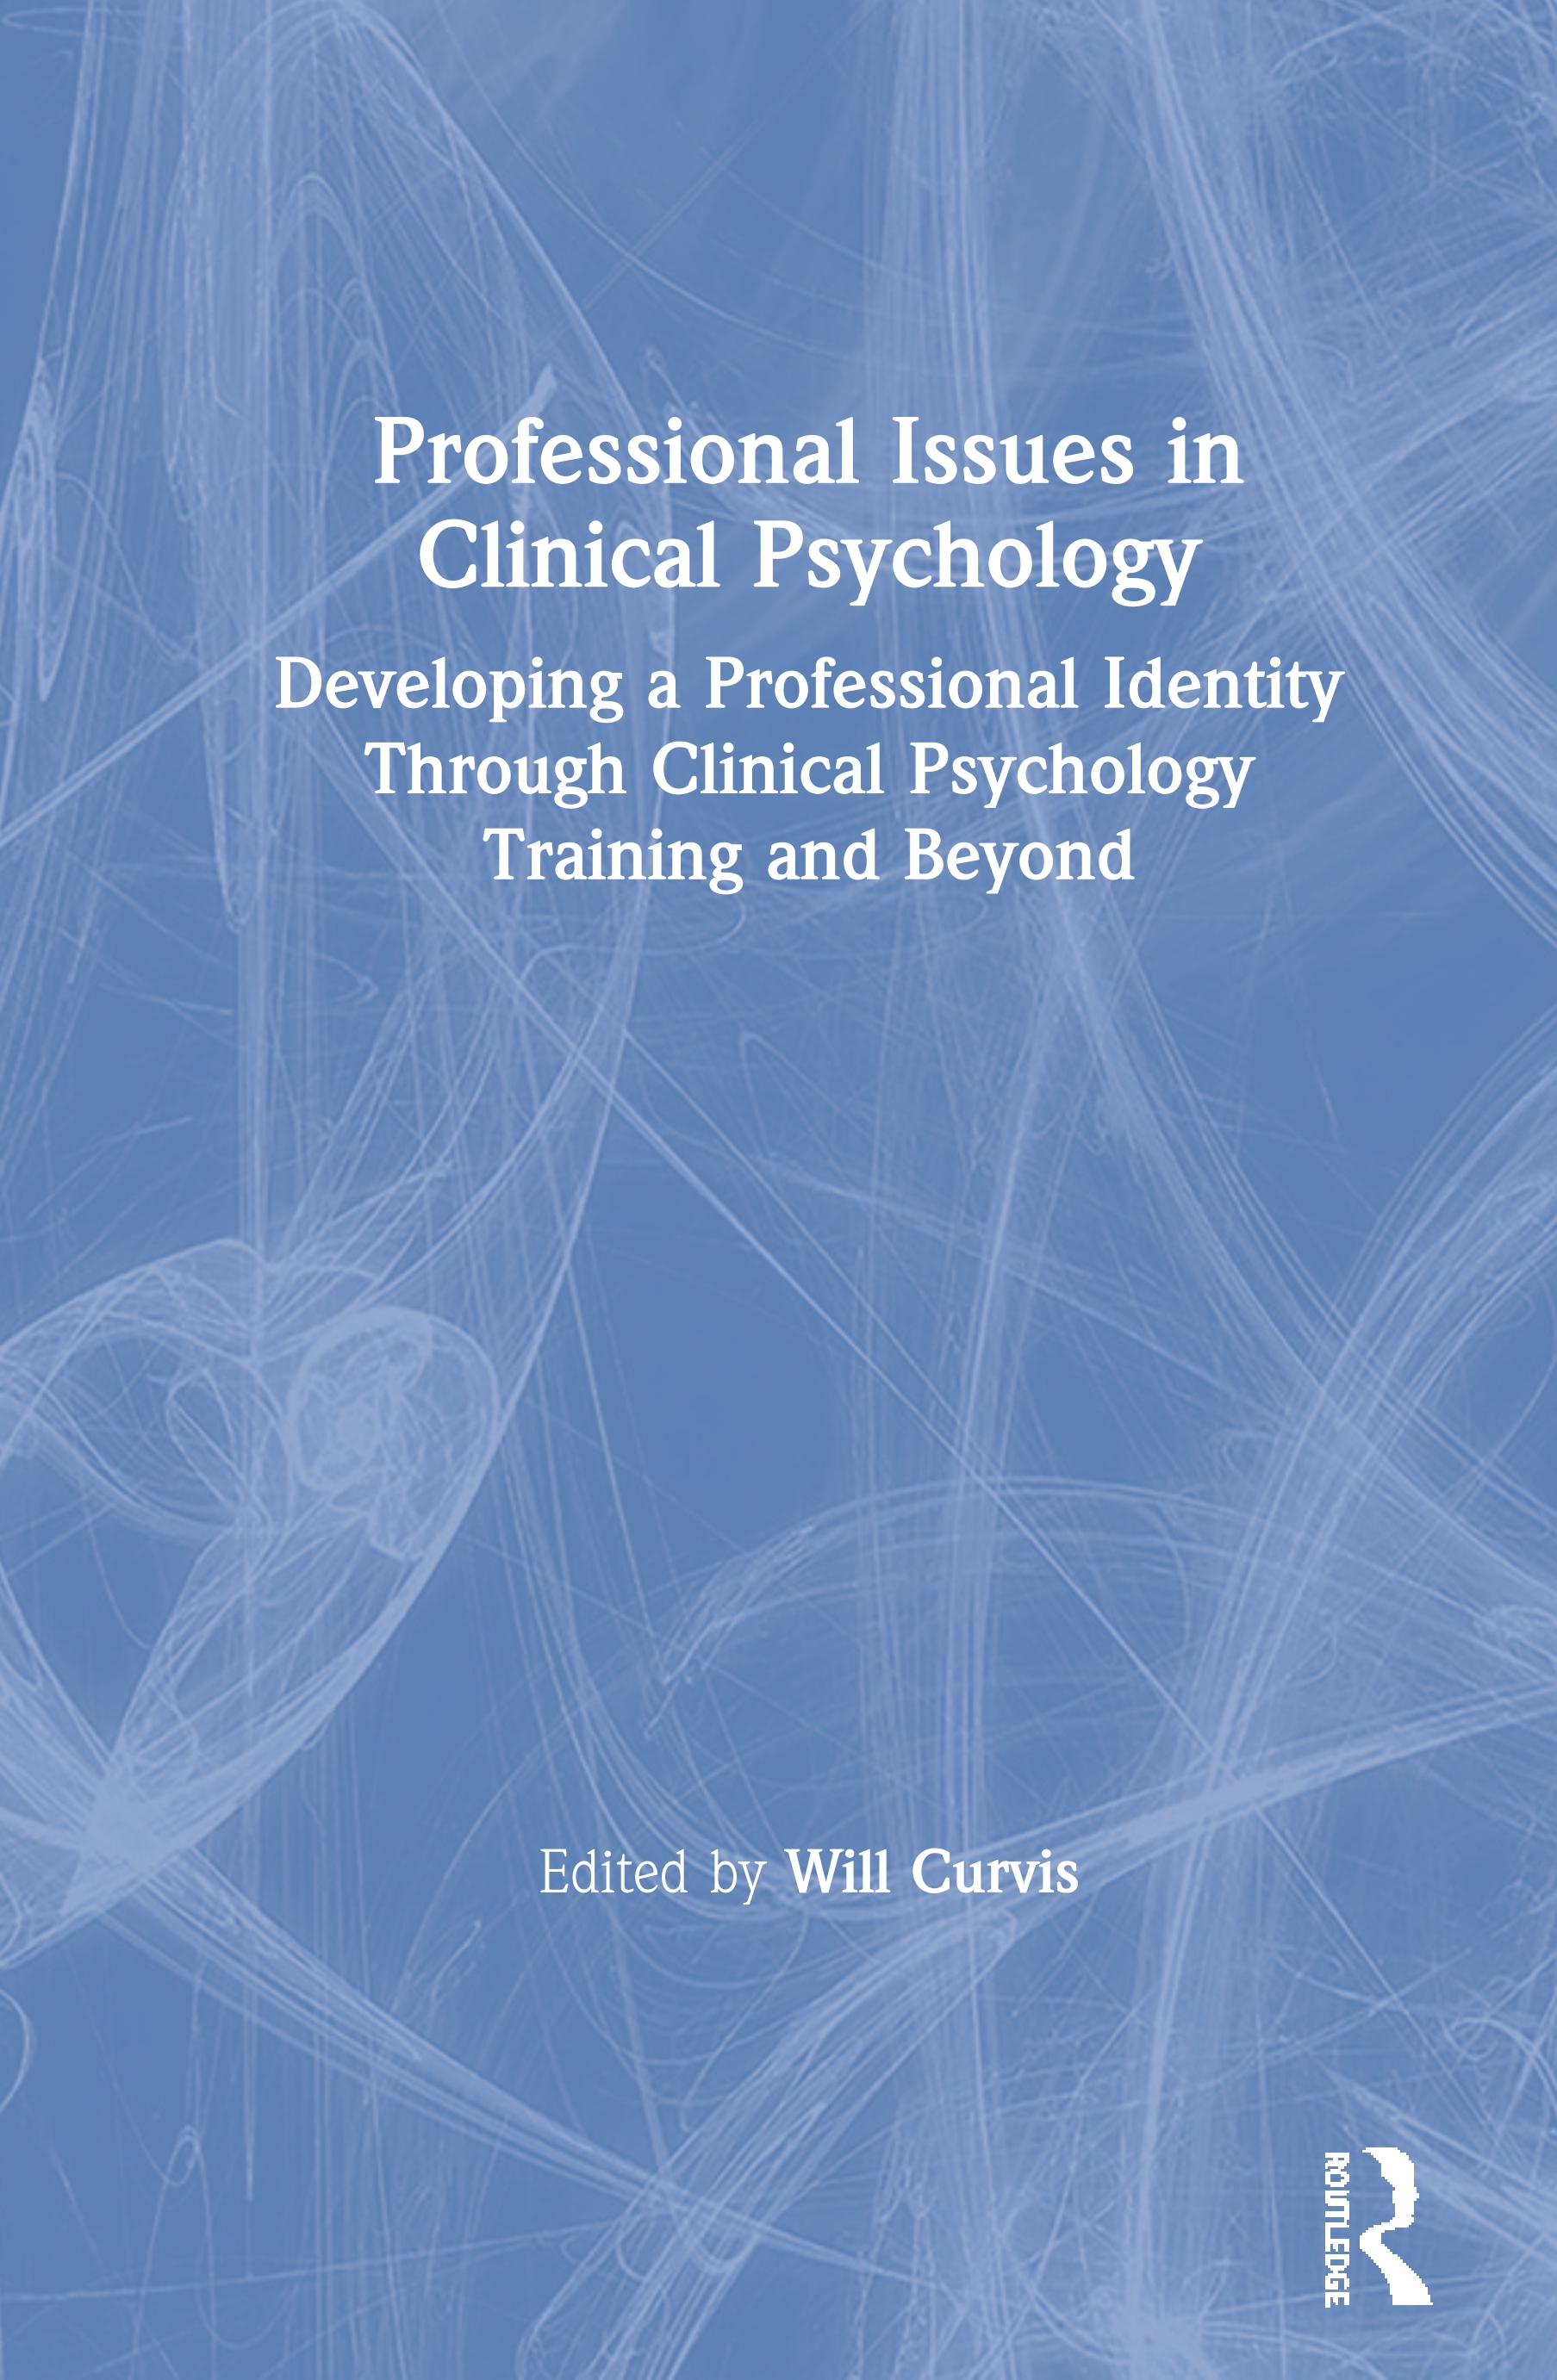 Professional Issues in Clinical Psychology: Developing a Professional Identity through Training and Beyond book cover